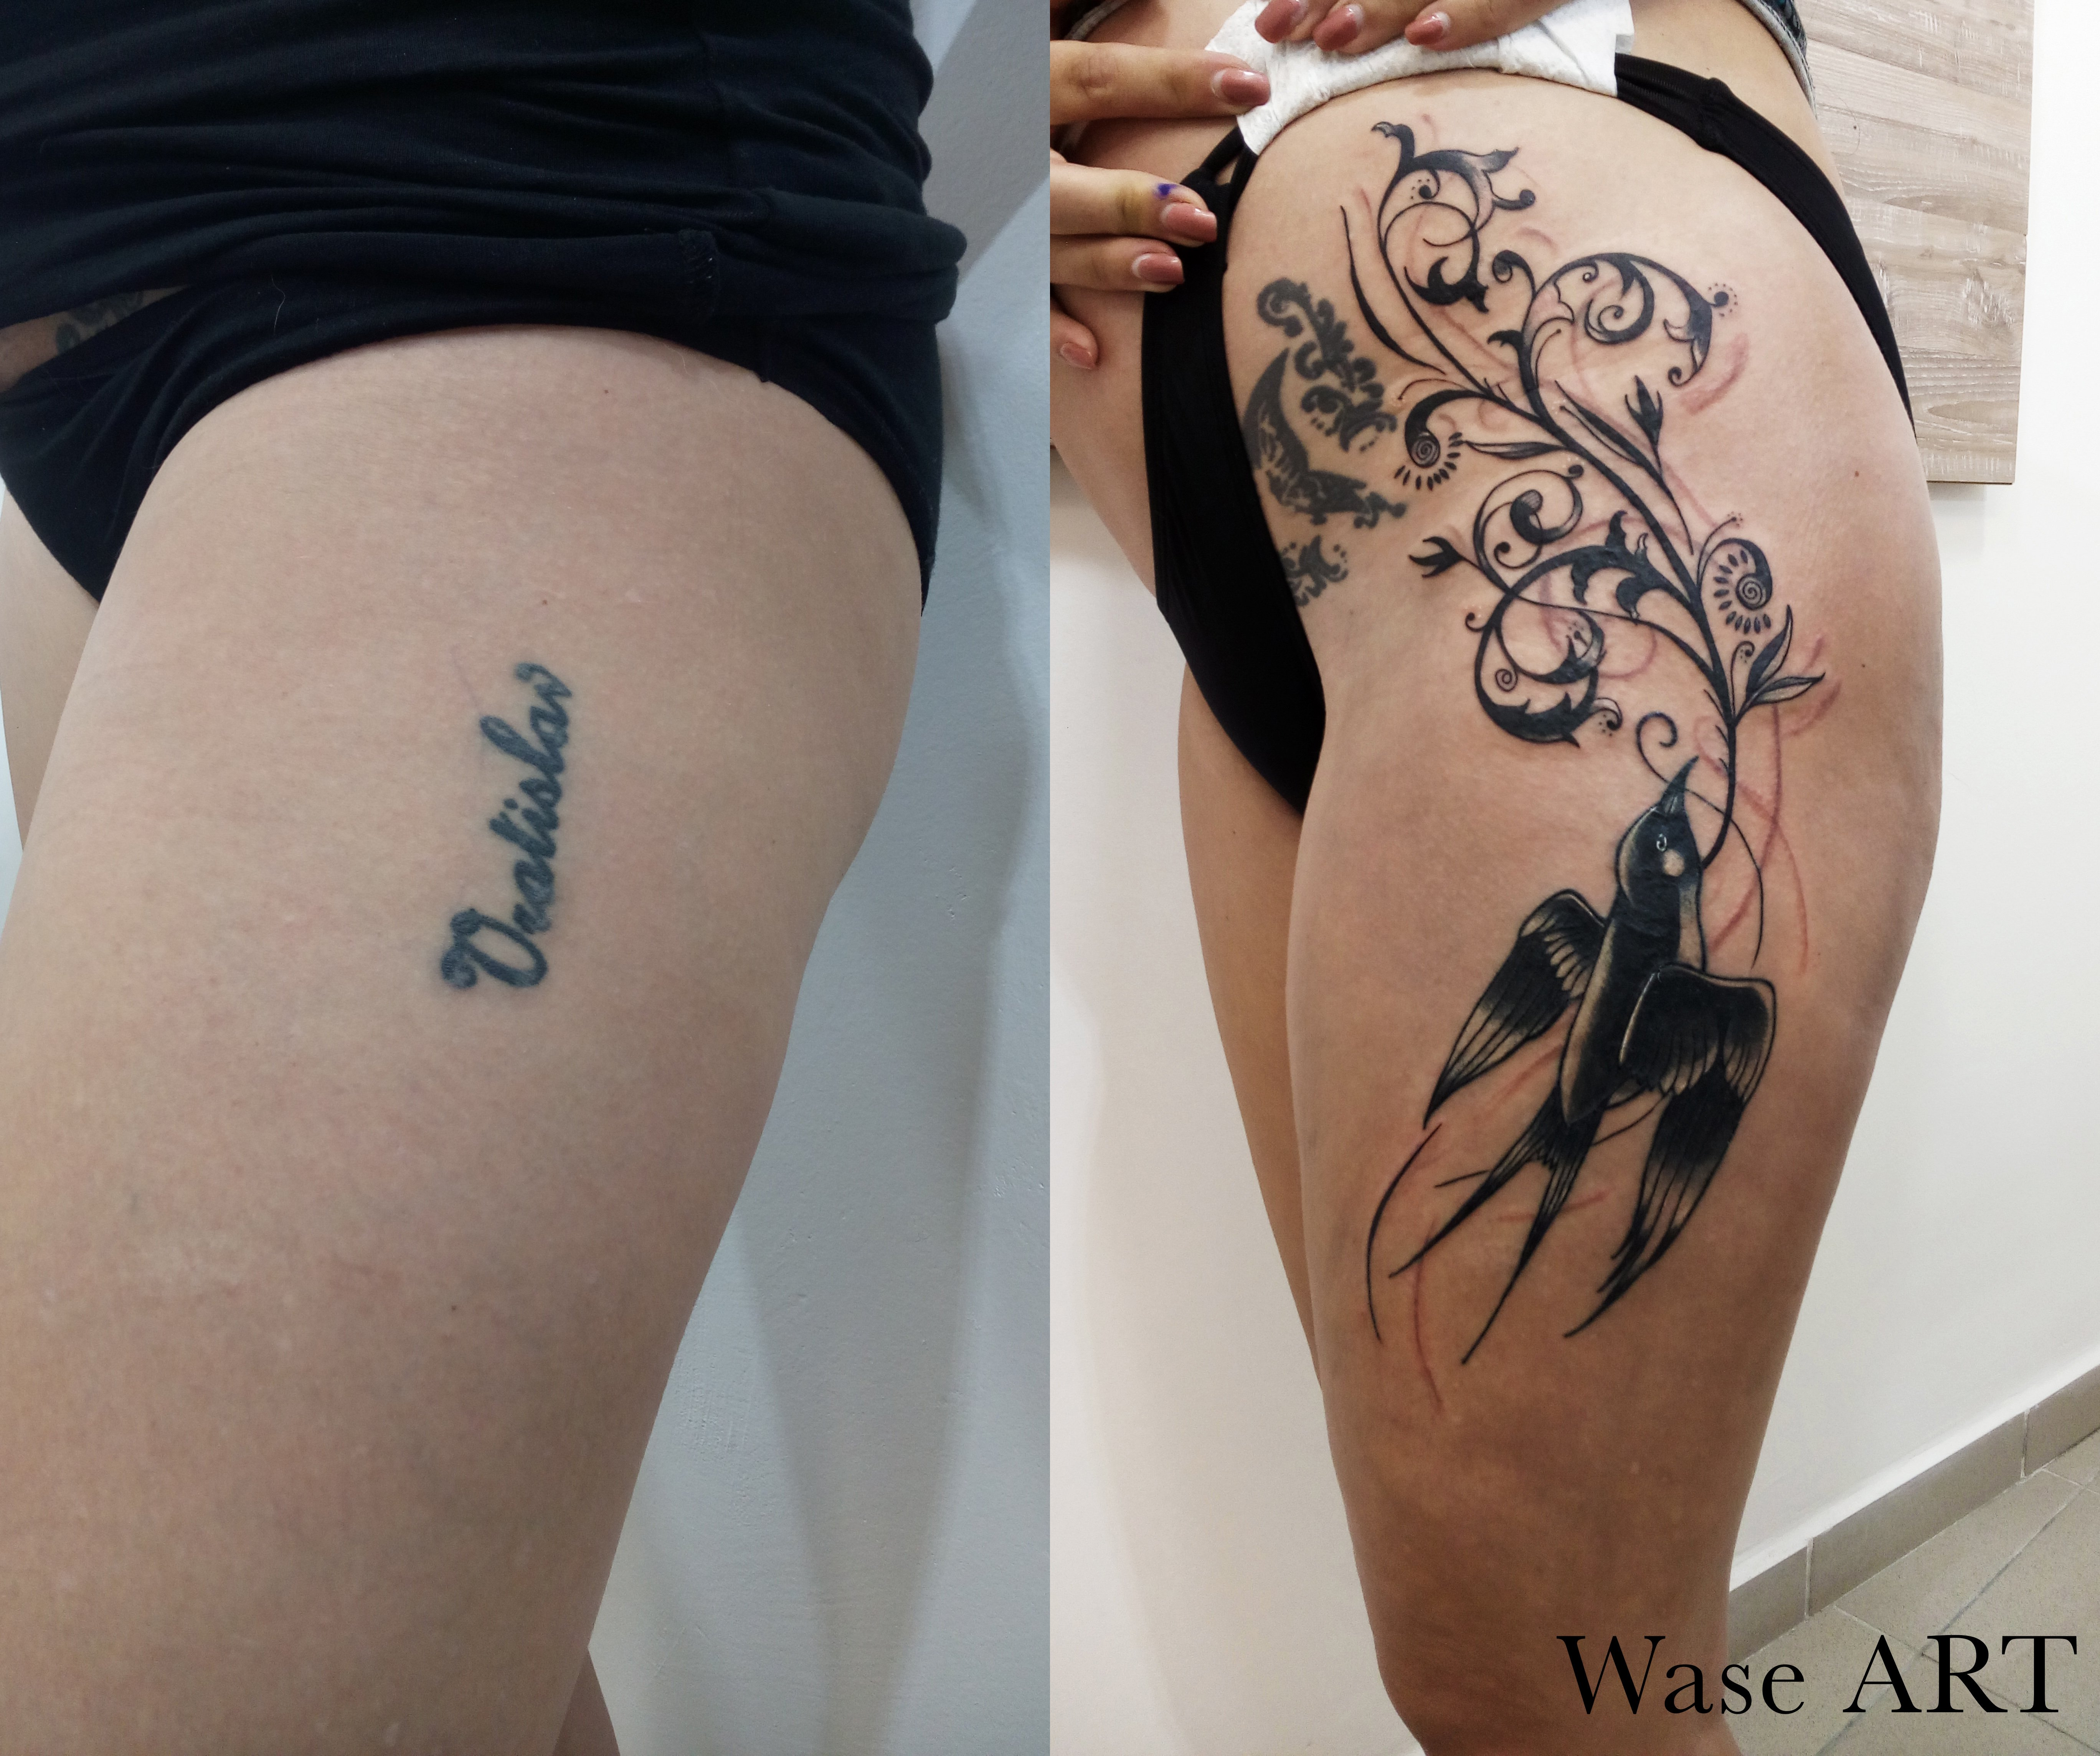 wase cover up.jpg